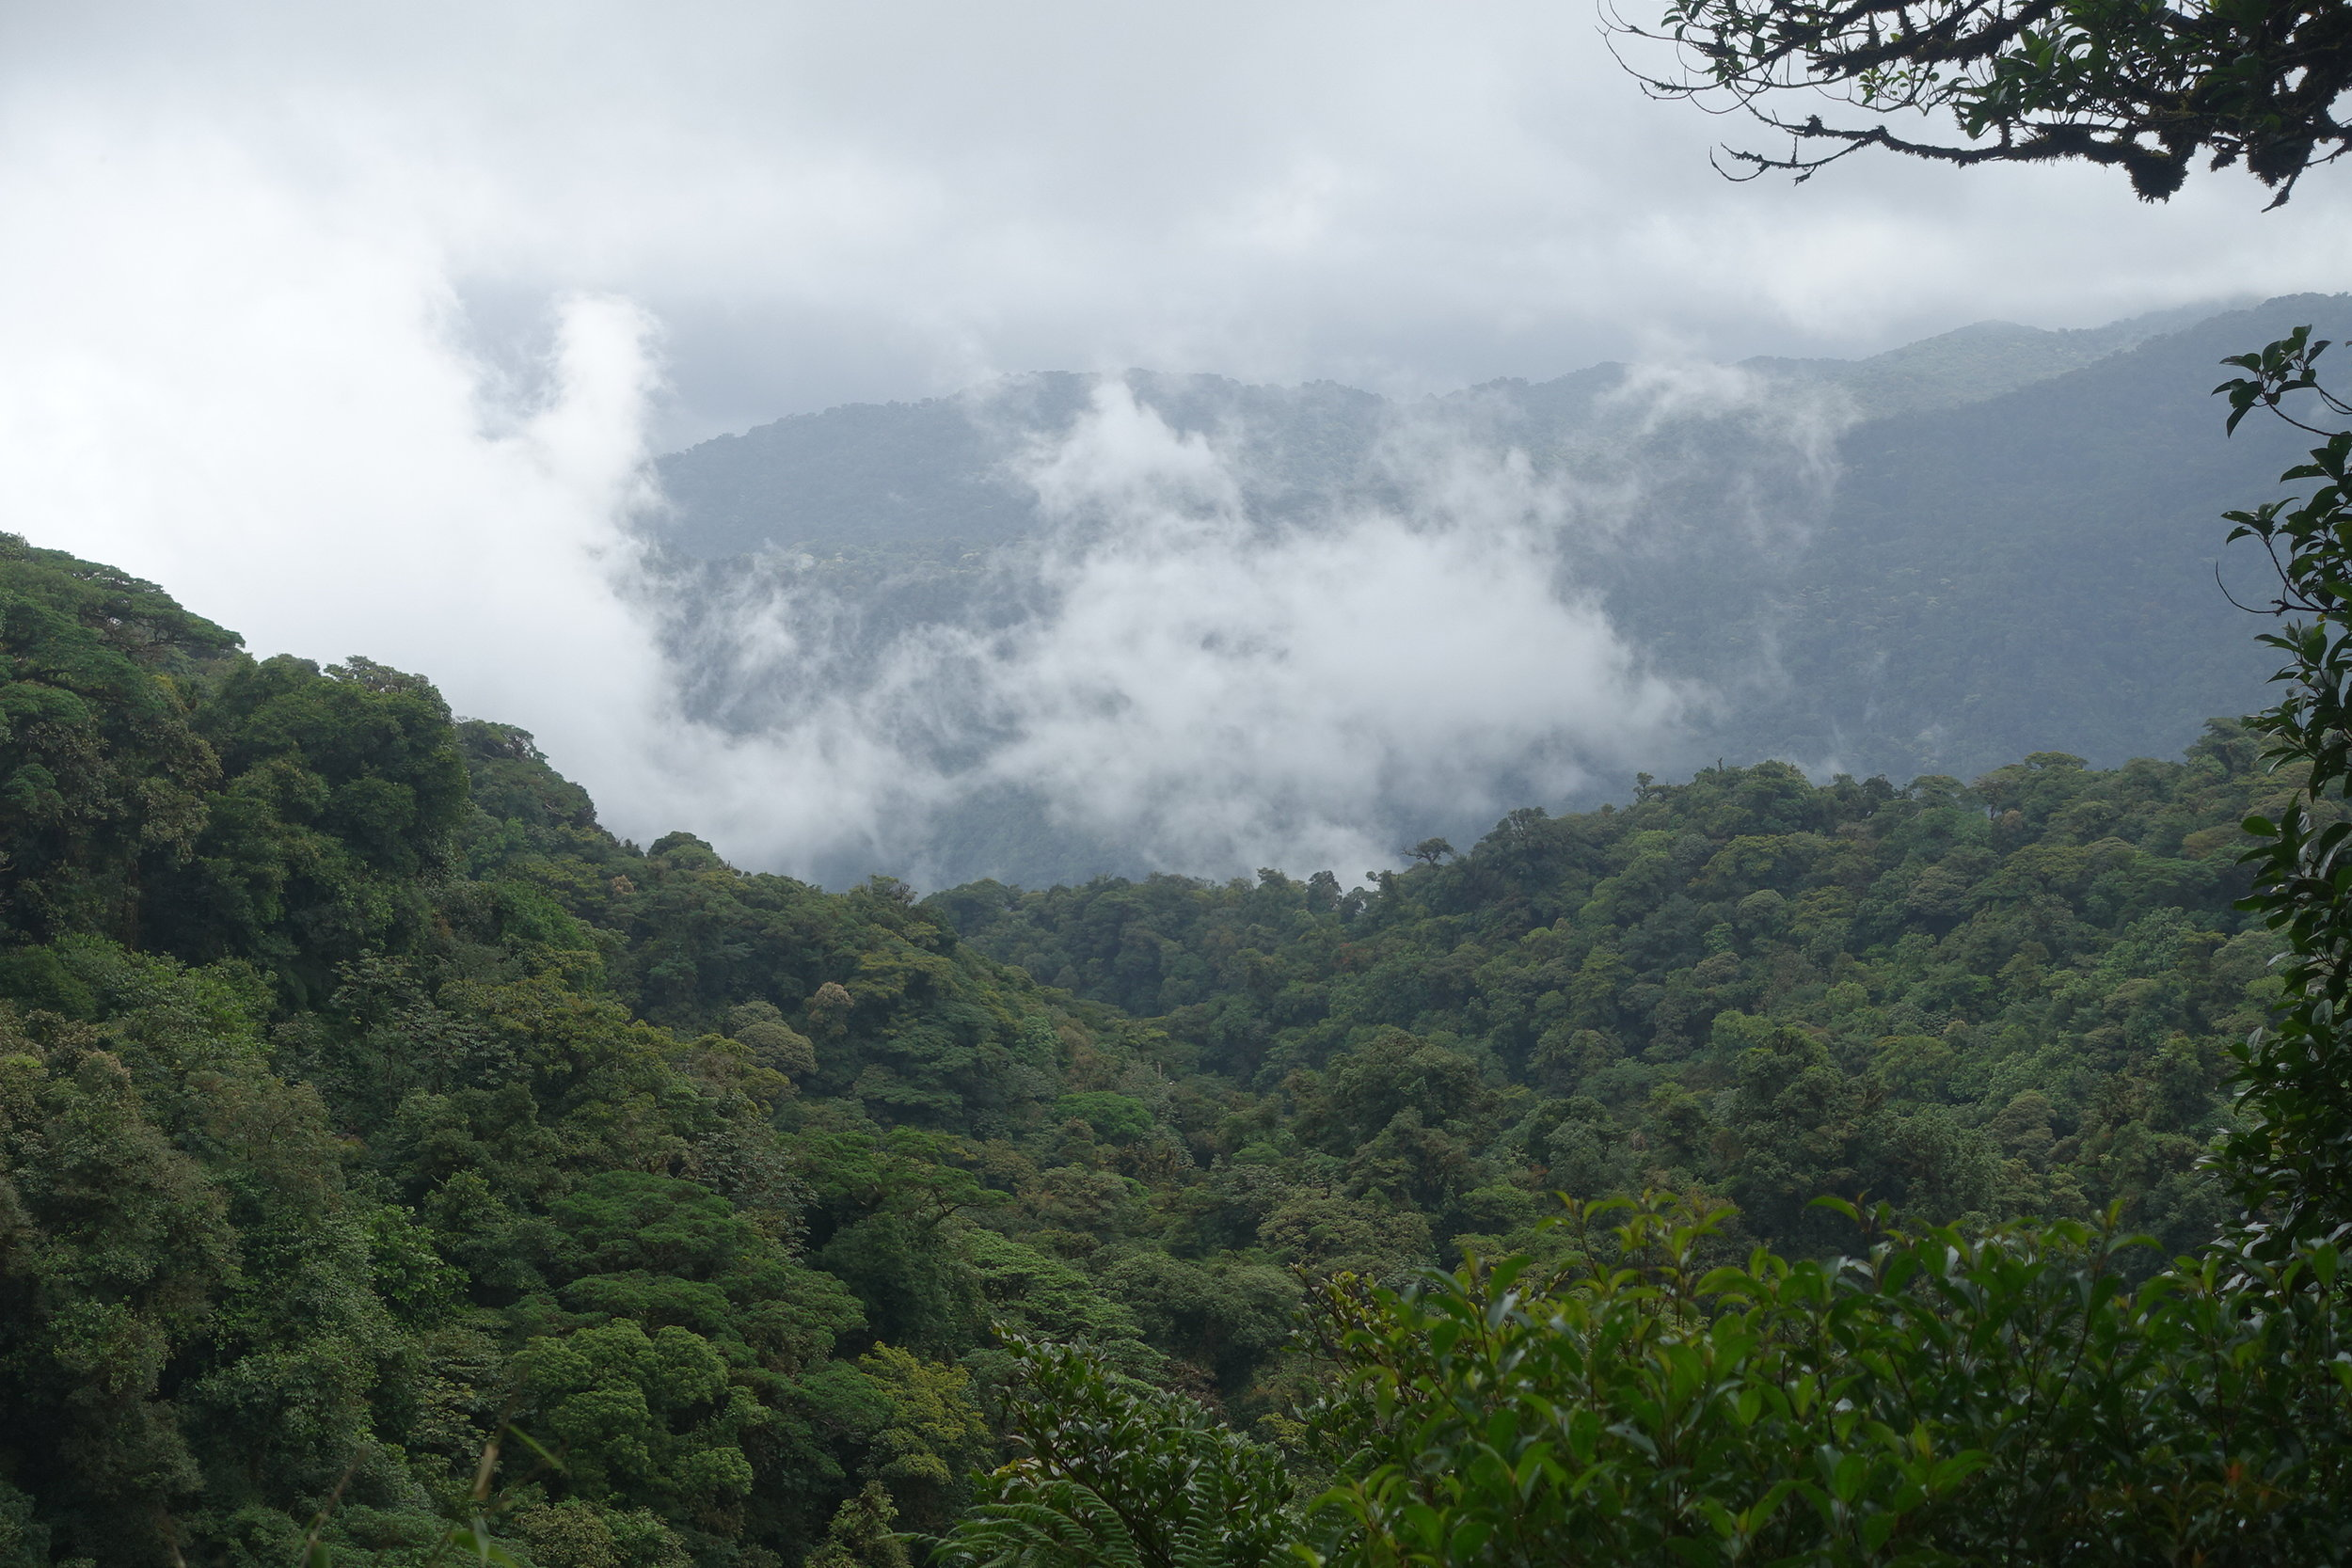 that's why it's called a cloud forest